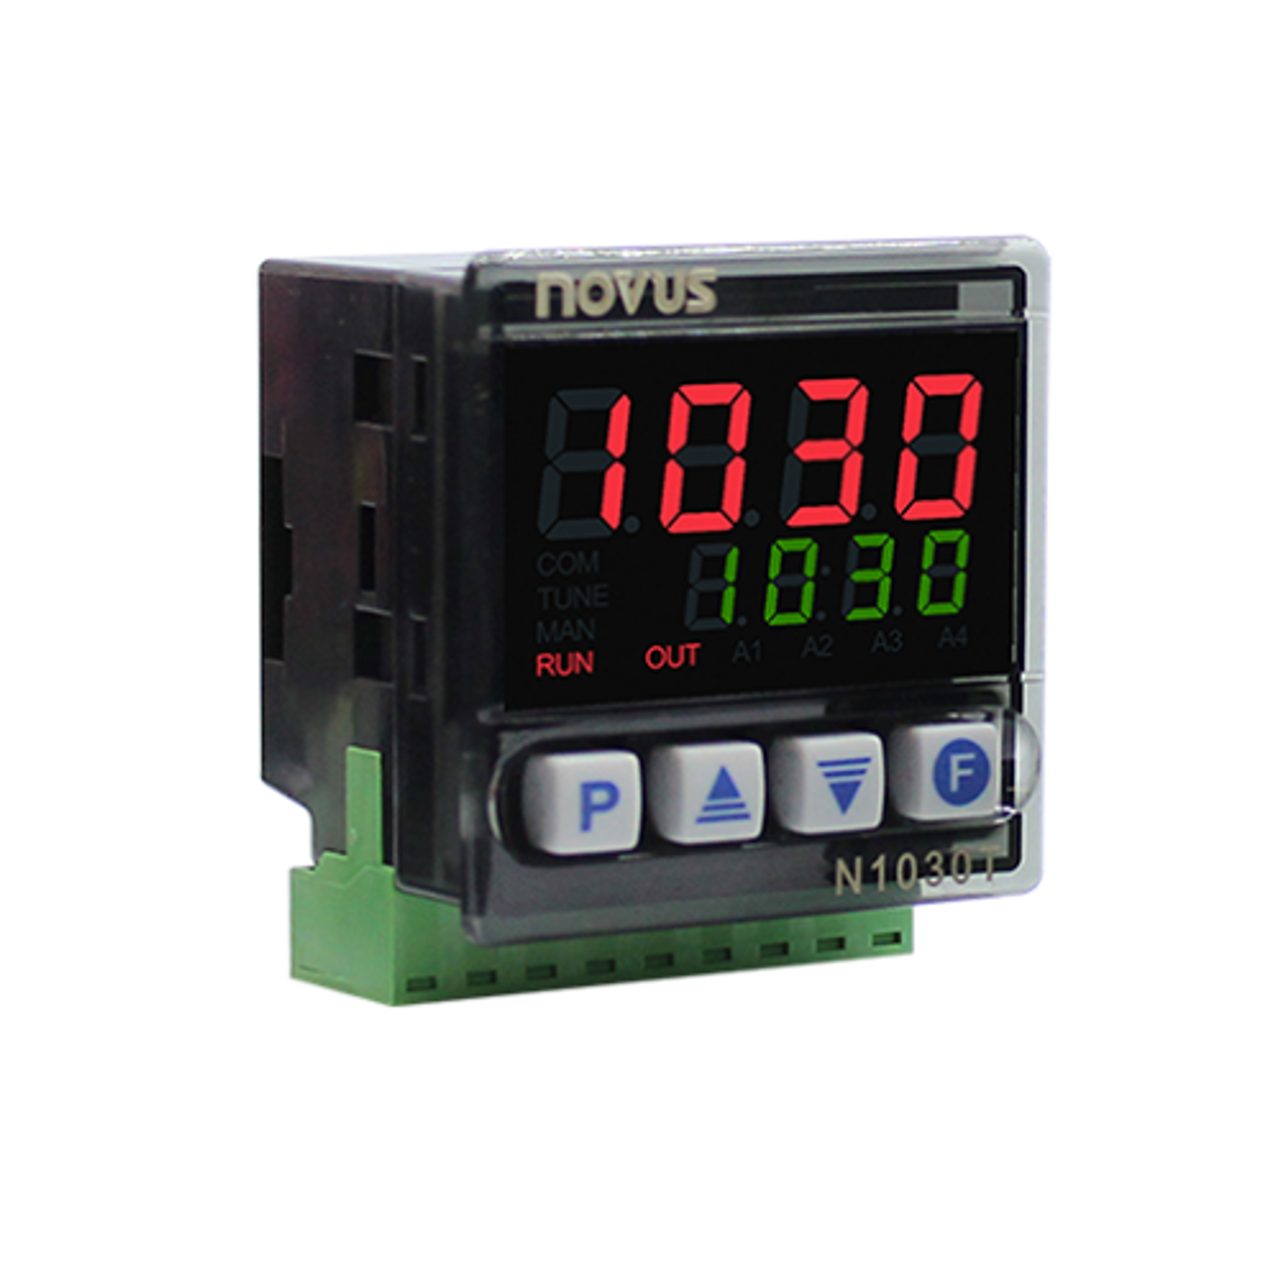 N1030T-PR 24V Timer/Temp. controller, 1 relay + pulse out, 48x48 mm